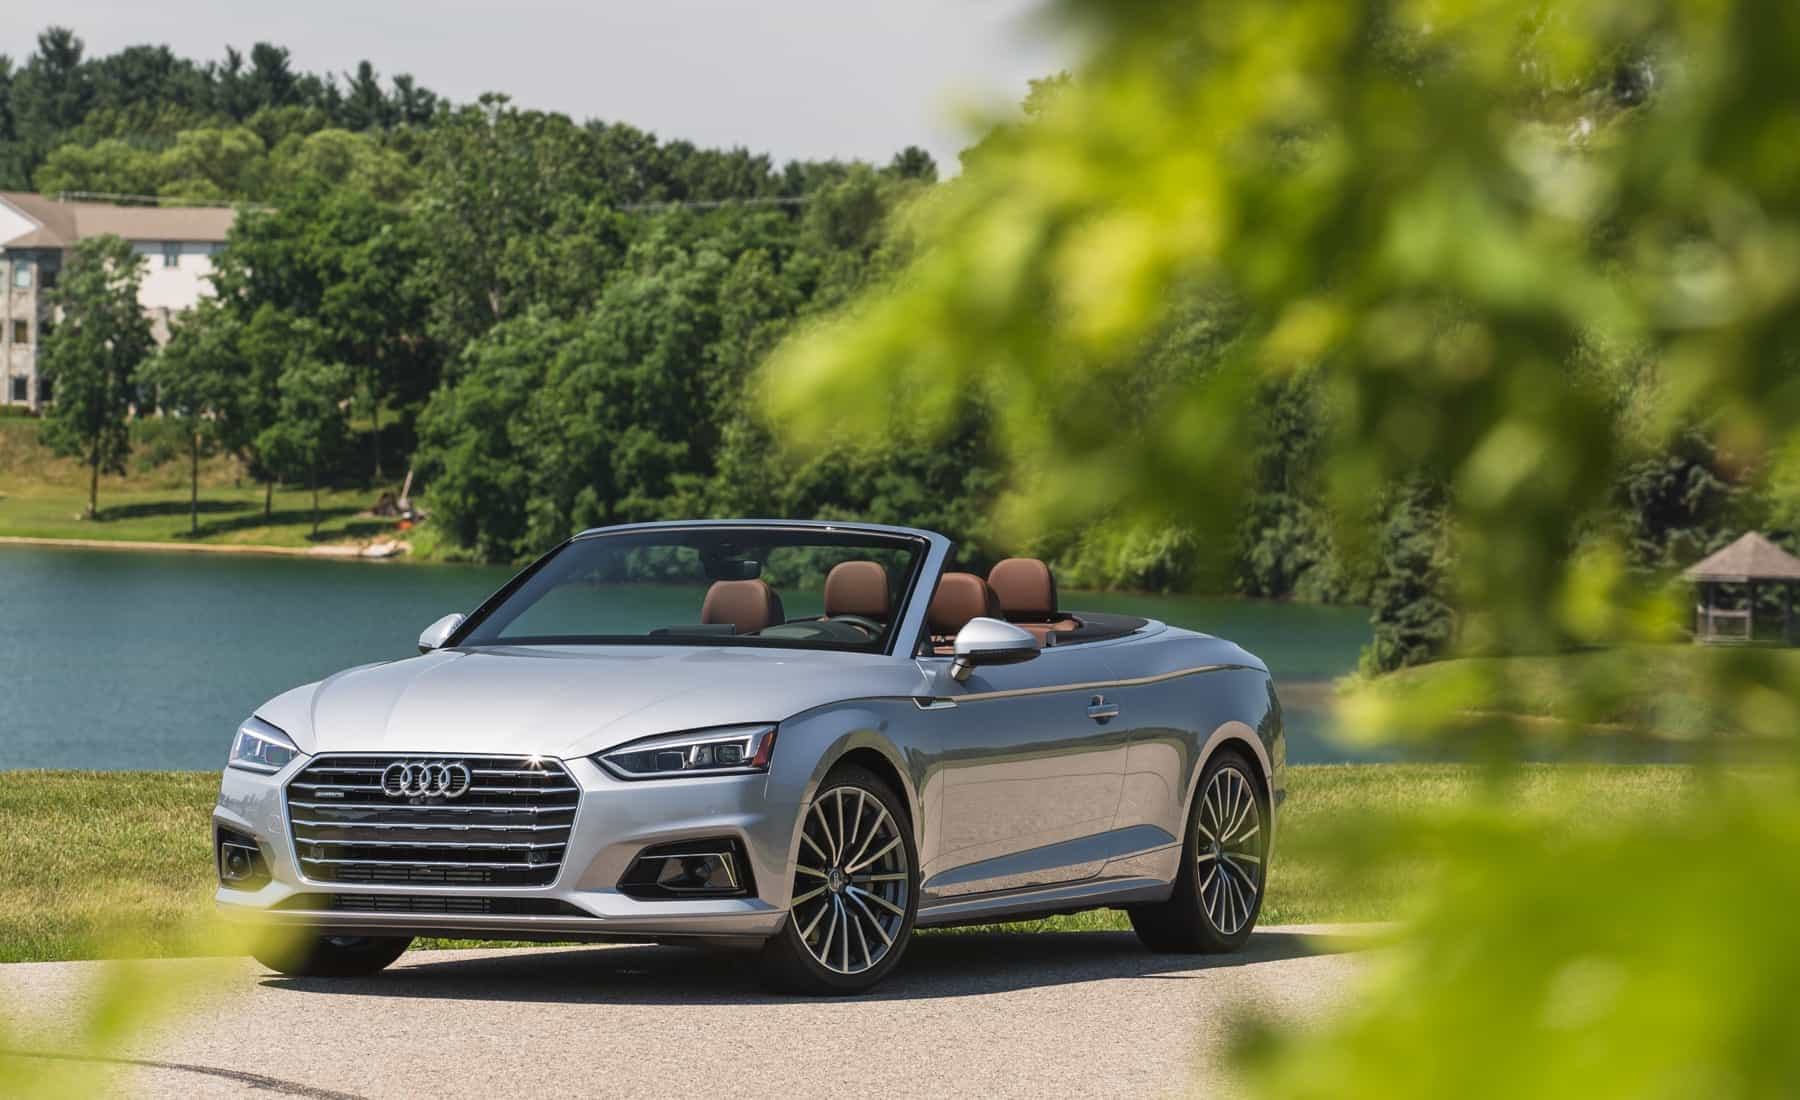 2018 Audi A5 Cabriolet Exterior Roof Open Front And Side (Photo 40 of 45)